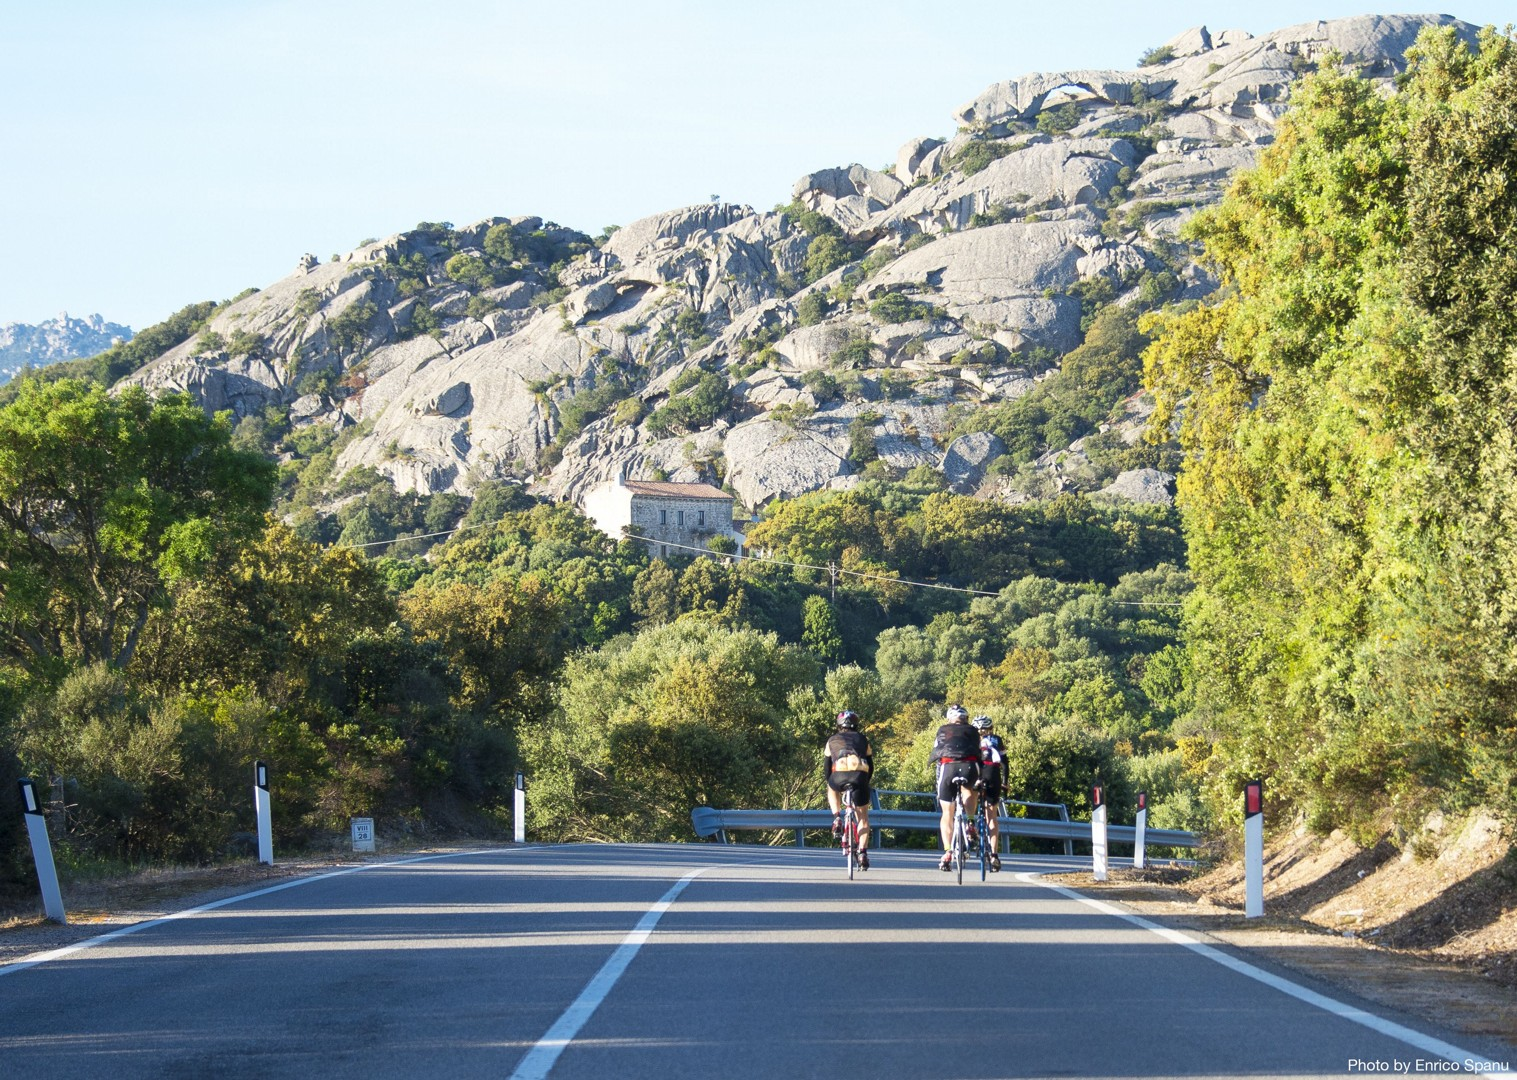 Self-Guided-Road-Cycling-Holiday-Coastal-Explorer-Sardinia-descent-to-Fluminimaggiore-and-Masua.jpg - Italy - Sardinia - Coastal Explorer - Self Guided Road Cycling Holiday - Italia Road Cycling